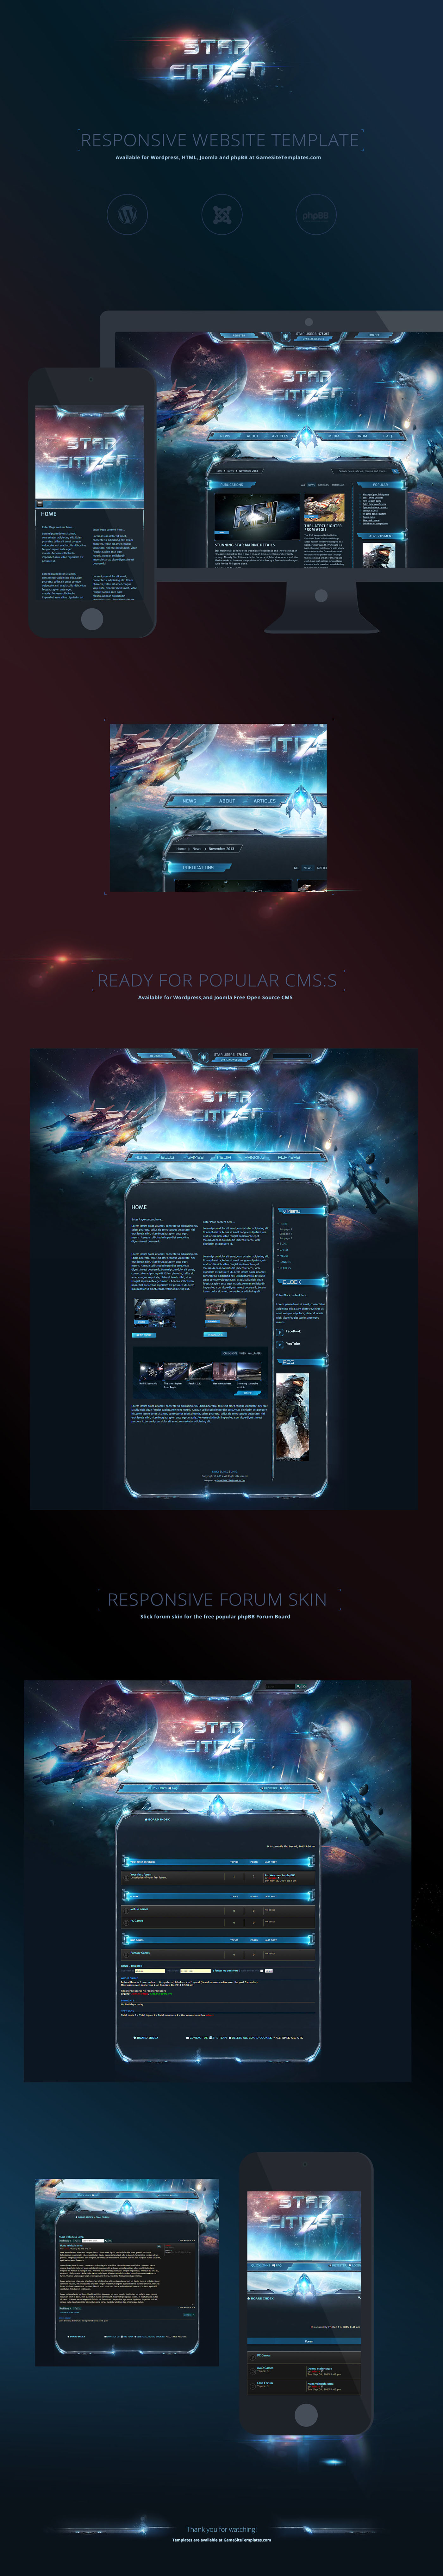 SciFi StarCitizen Game Template on Behance